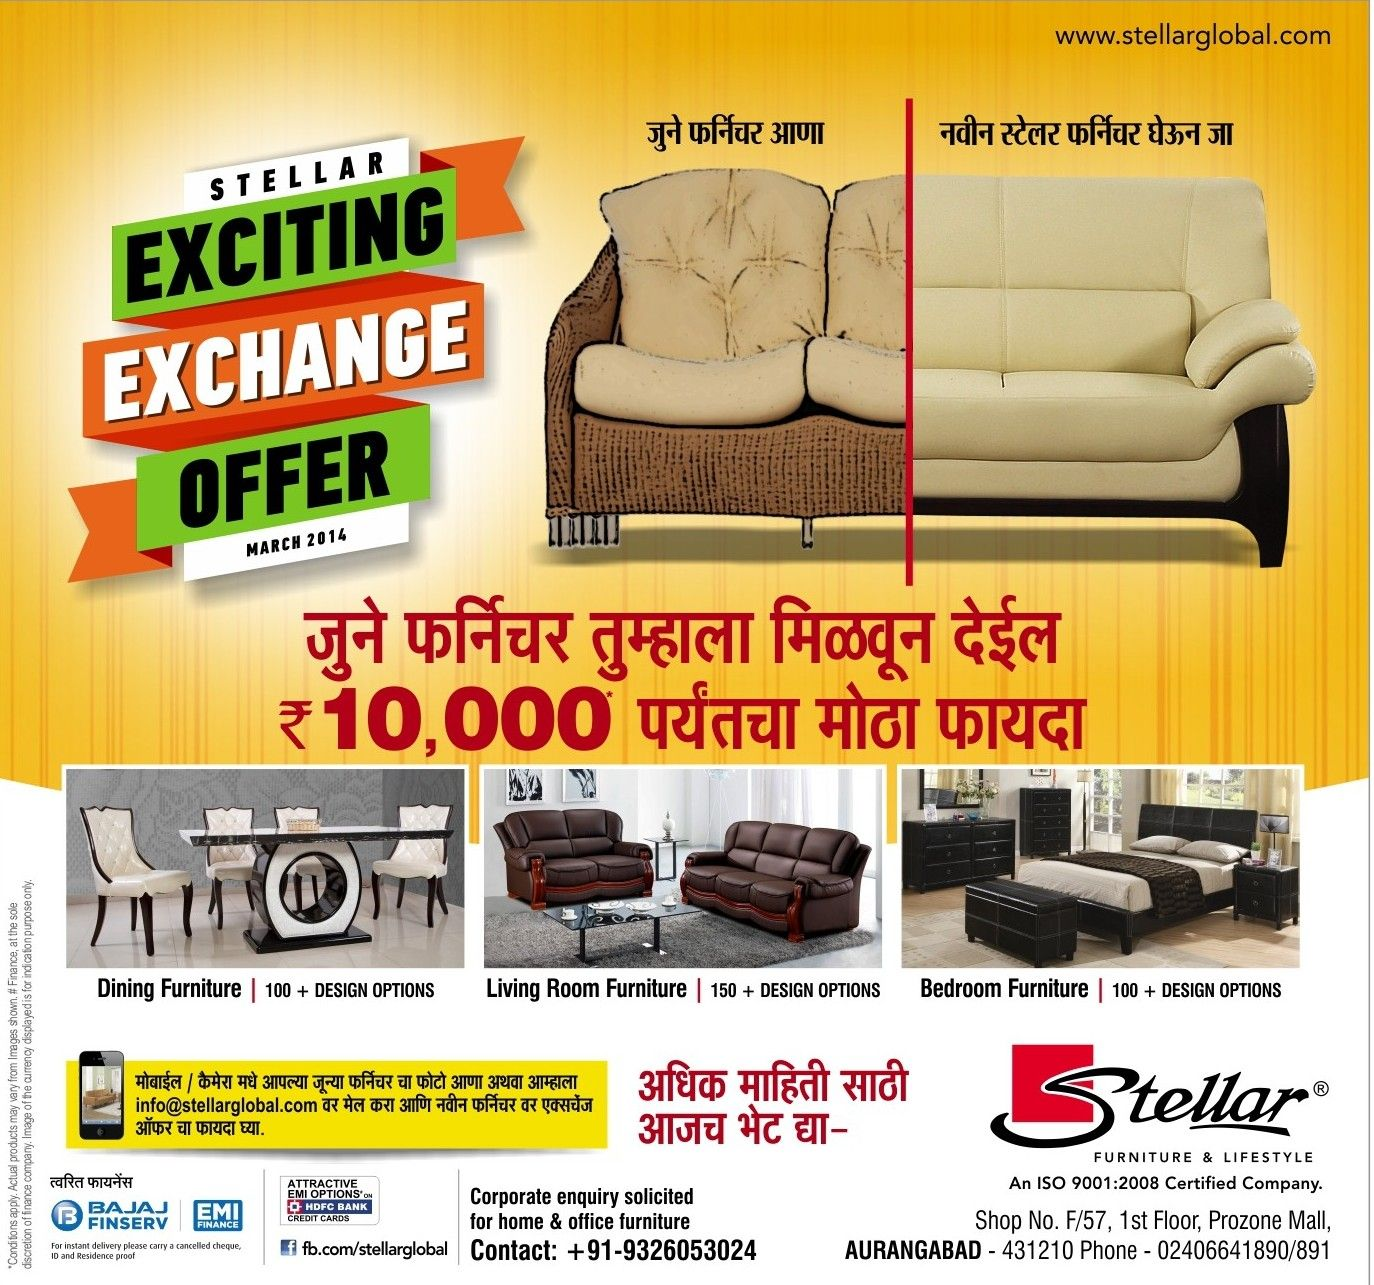 Superbe Stellar Furniture Brings To You Exciting Exchange Offer At Aurangabad,  Maharashtra... Exchange Your Old Furniture With The New Stylish And  Luxurious Stellar ...